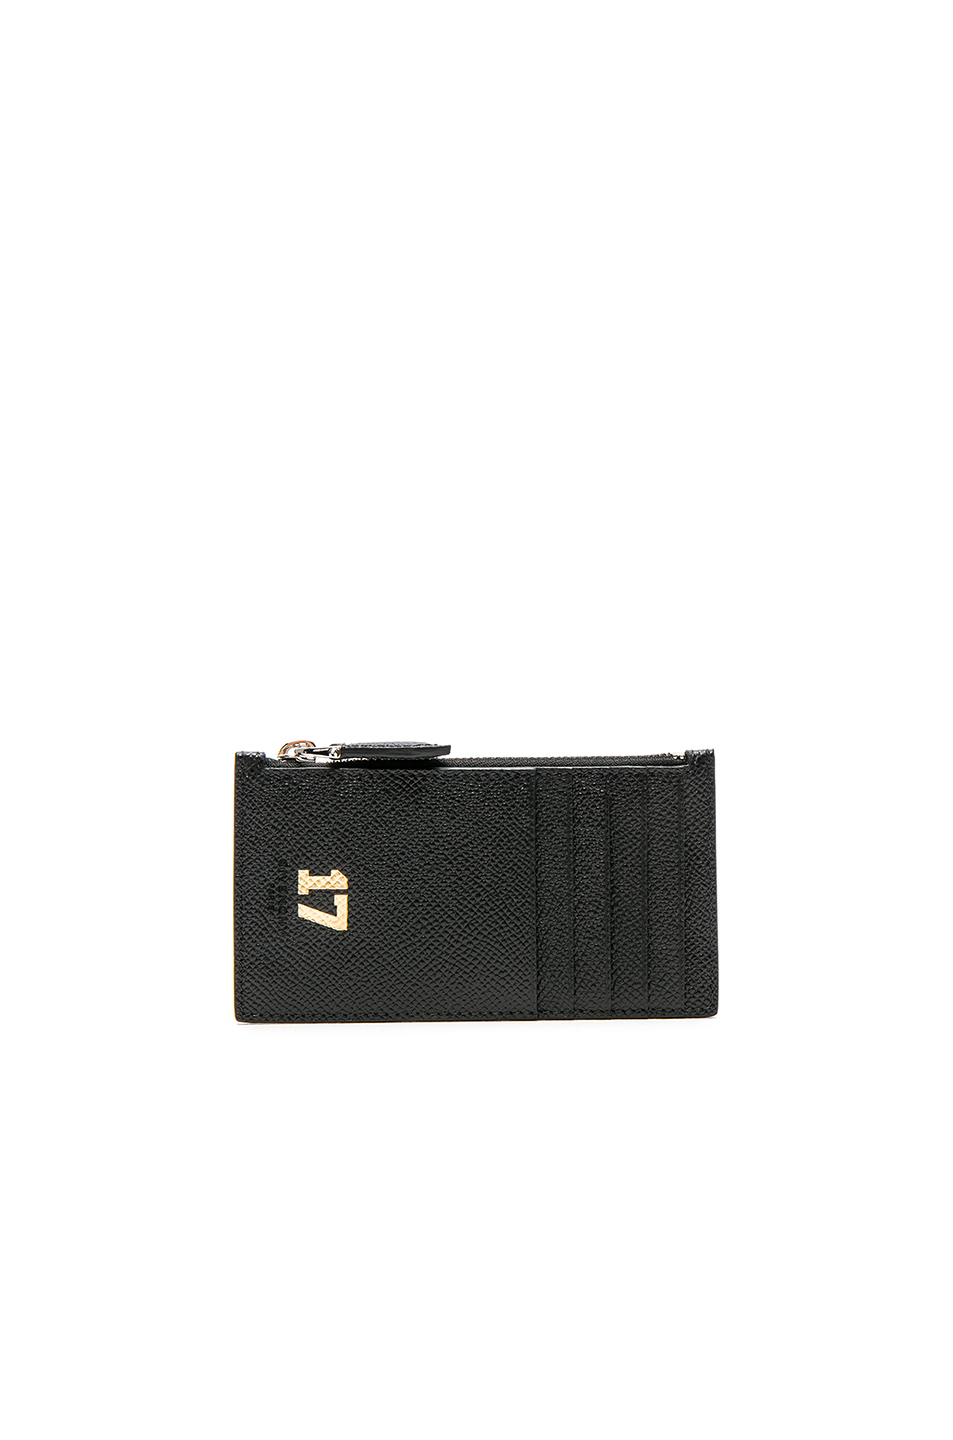 Givenchy 17 Zip Card Holder in Black